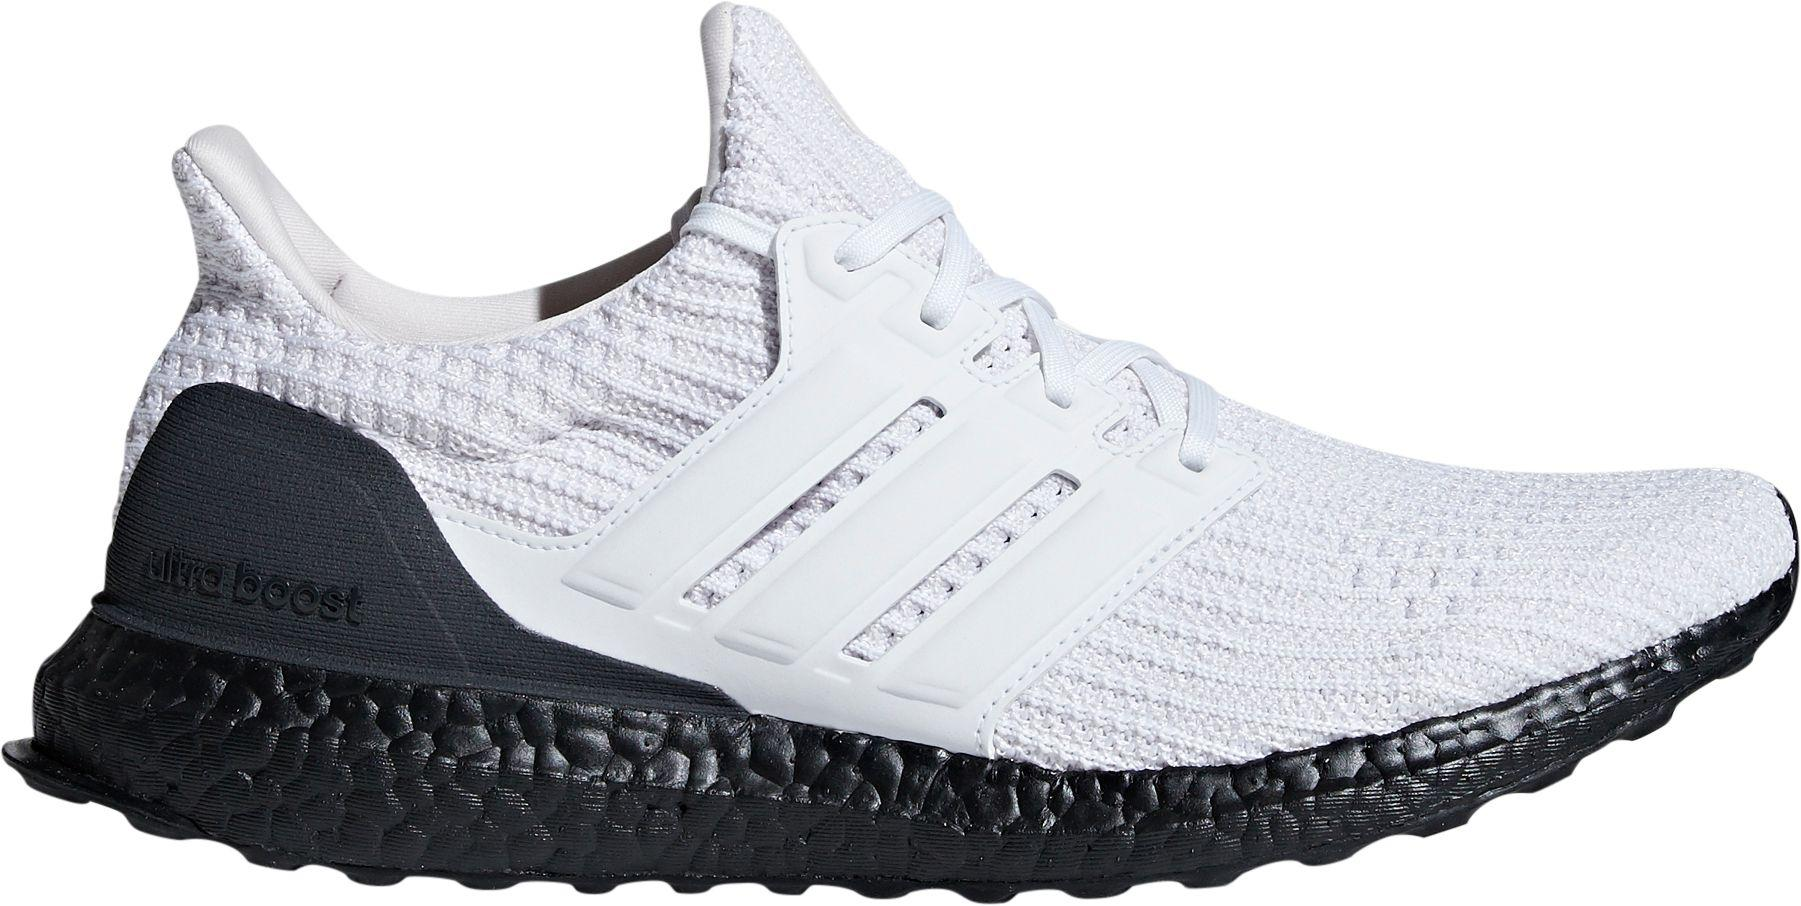 bdc9593037317 Lyst - adidas Ultraboost Running Shoes in Black for Men